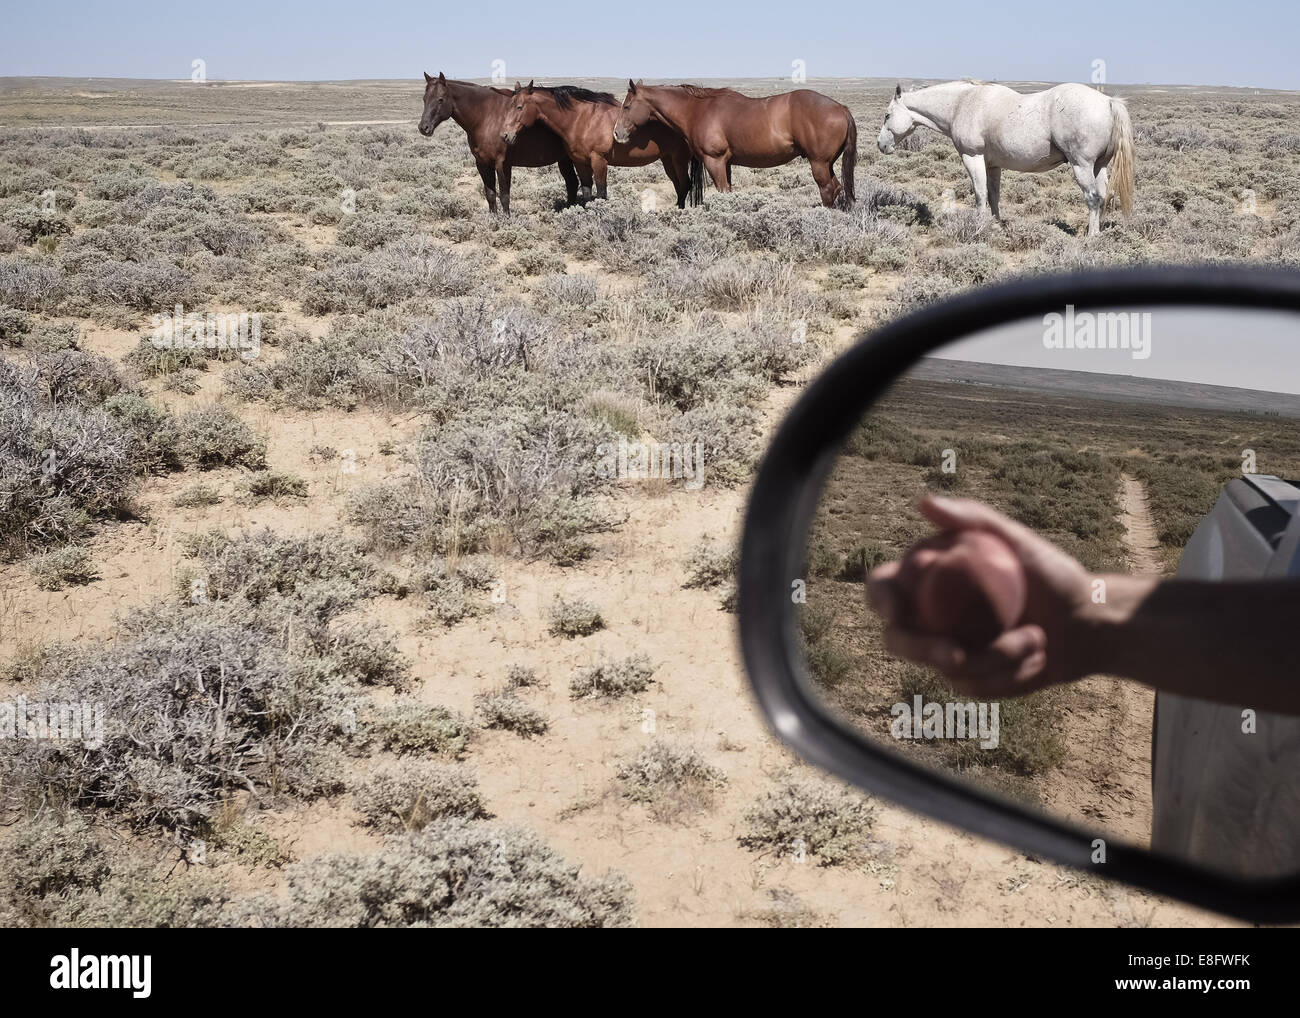 USA, Wyoming, Horses and reflection of hand with apple in side mirror - Stock Image